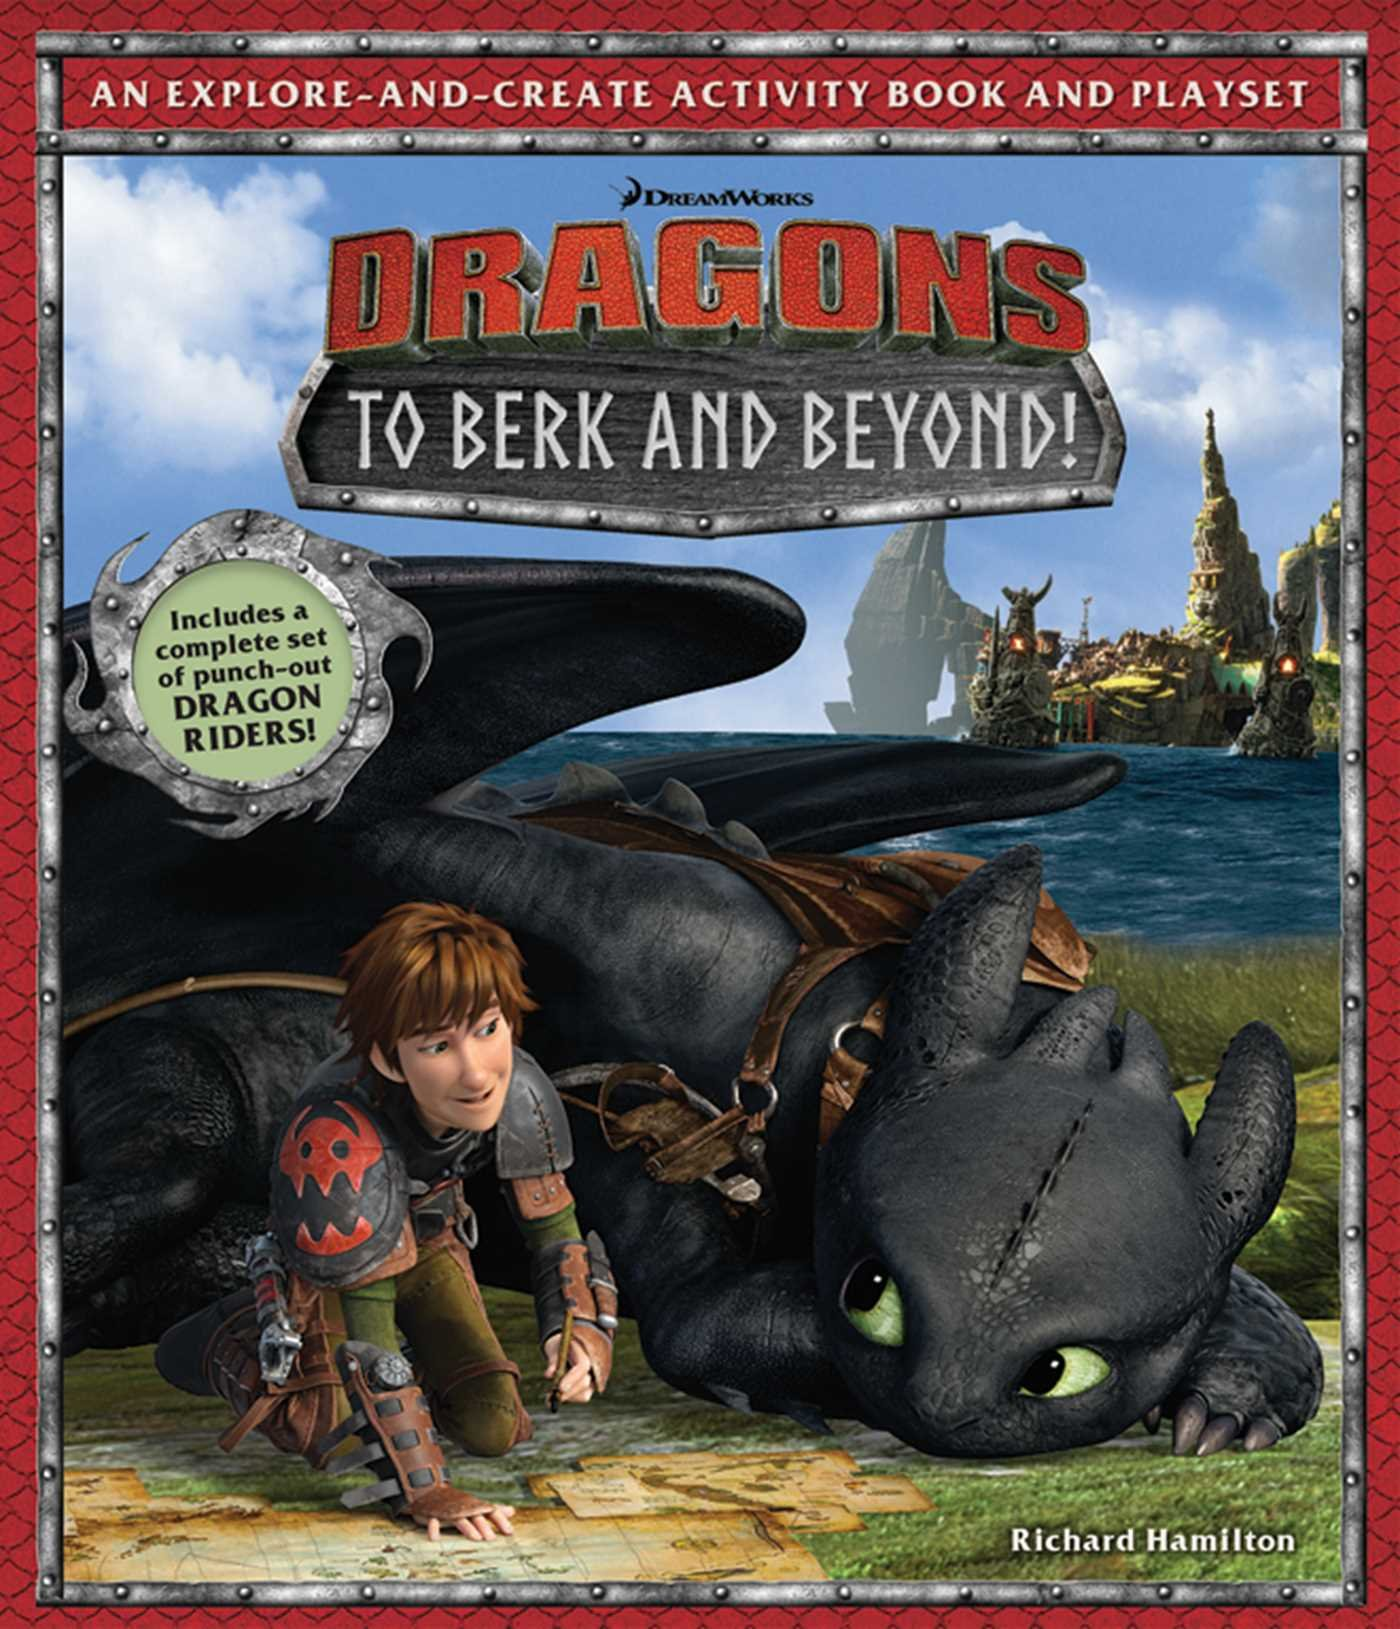 DreamWorks Dragons: To Berk and Beyond! | How to Train Your Dragon